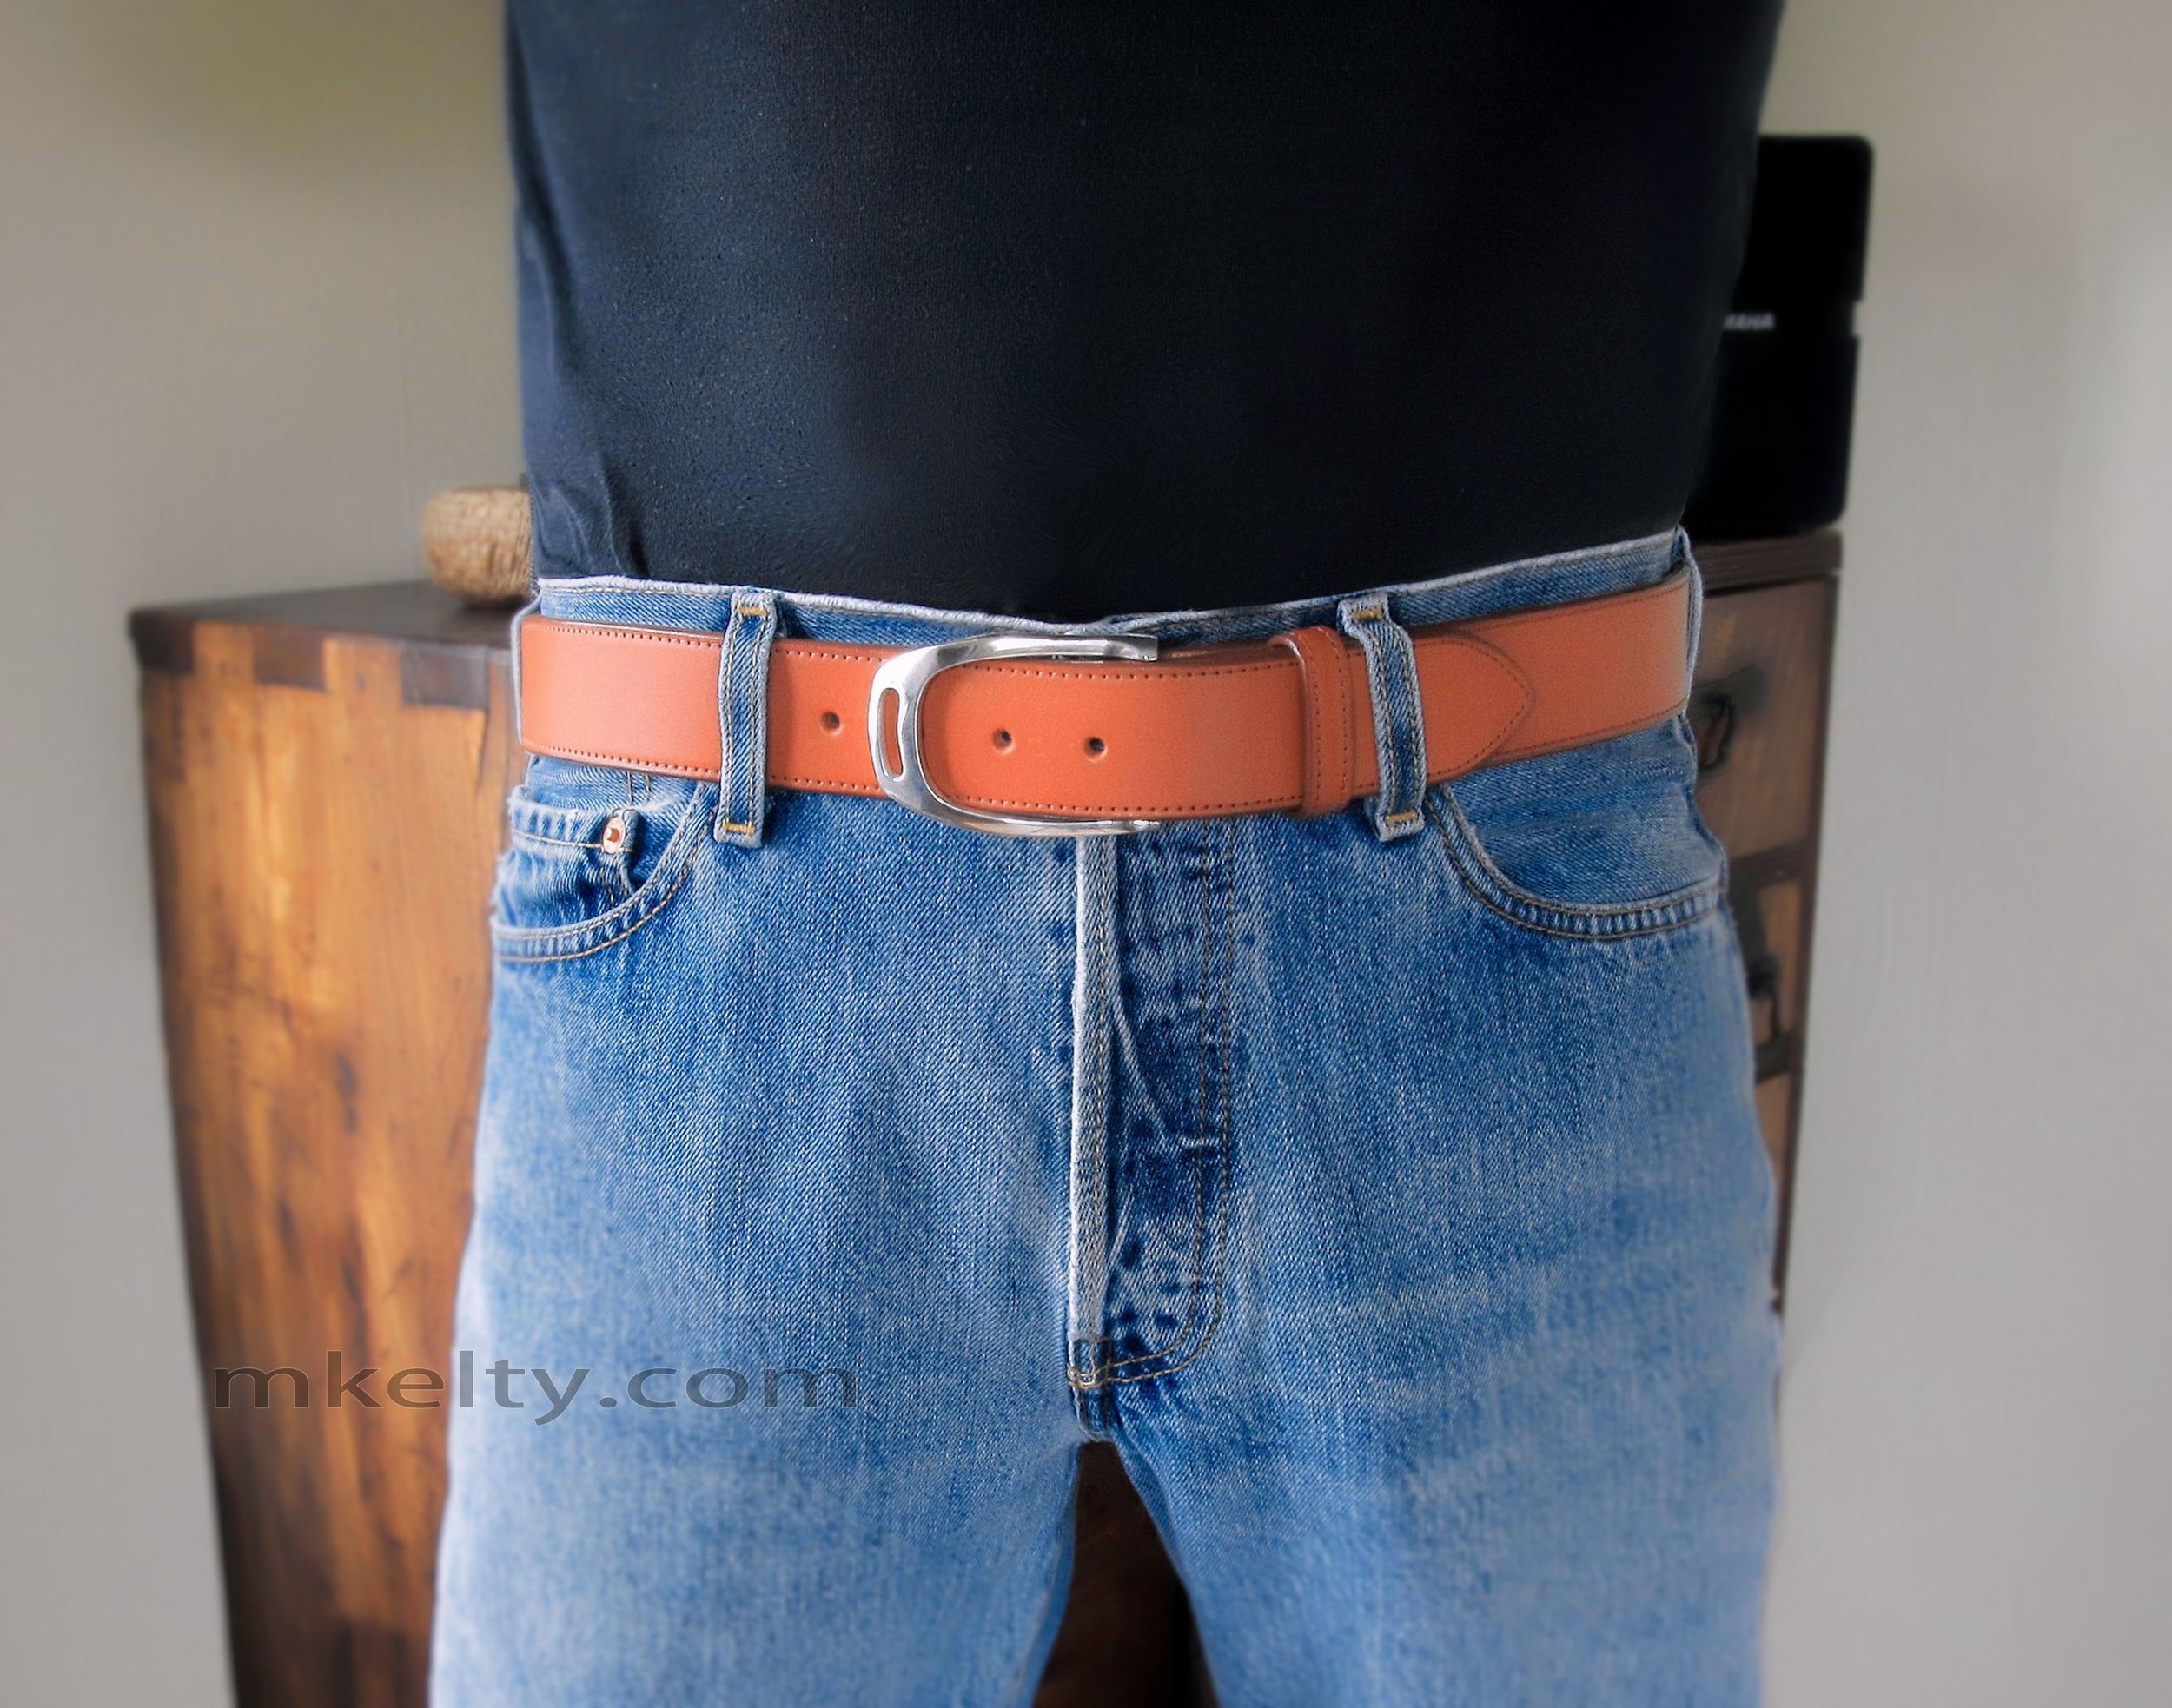 Stirrup Belt Buckle On Jeans